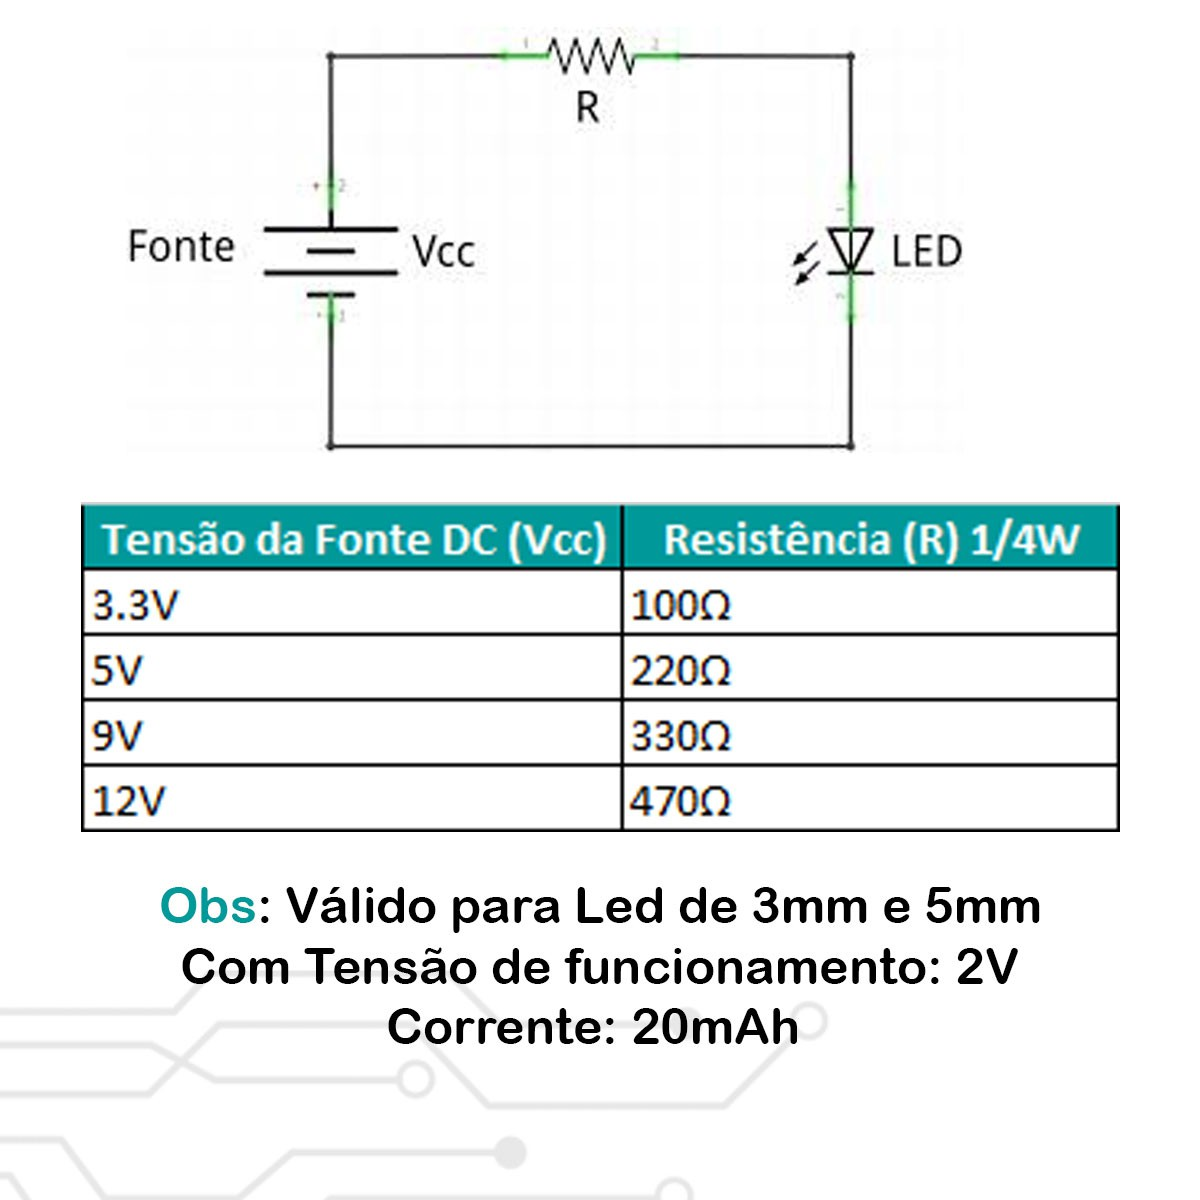 1000x Led Verde Alto Brilho 5mm